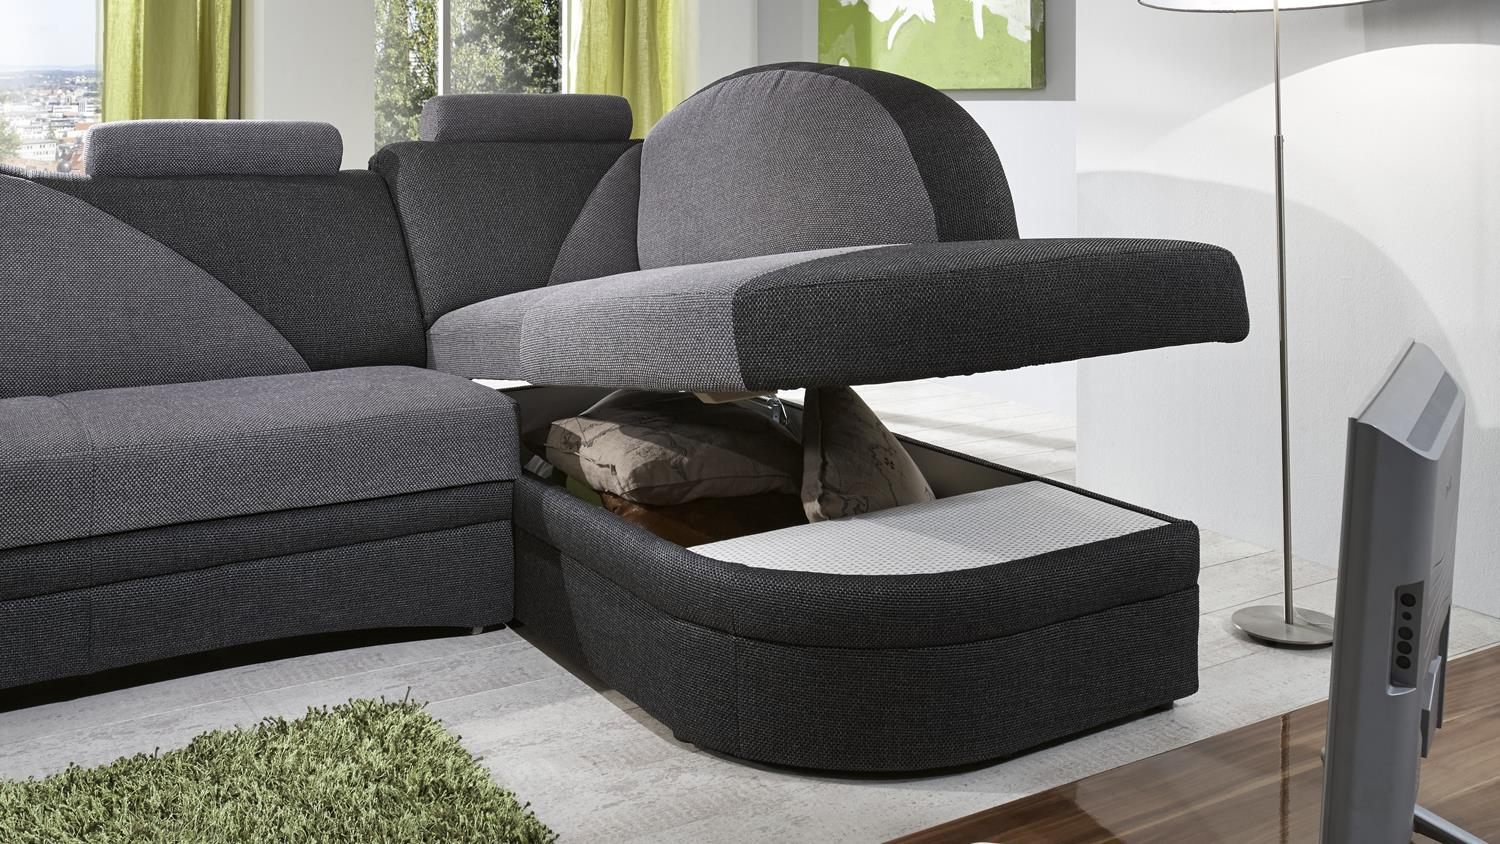 Ecksofa helsinki in anthrazit grau inkl schlaffunktion for Funktions ecksofa mit bettkasten